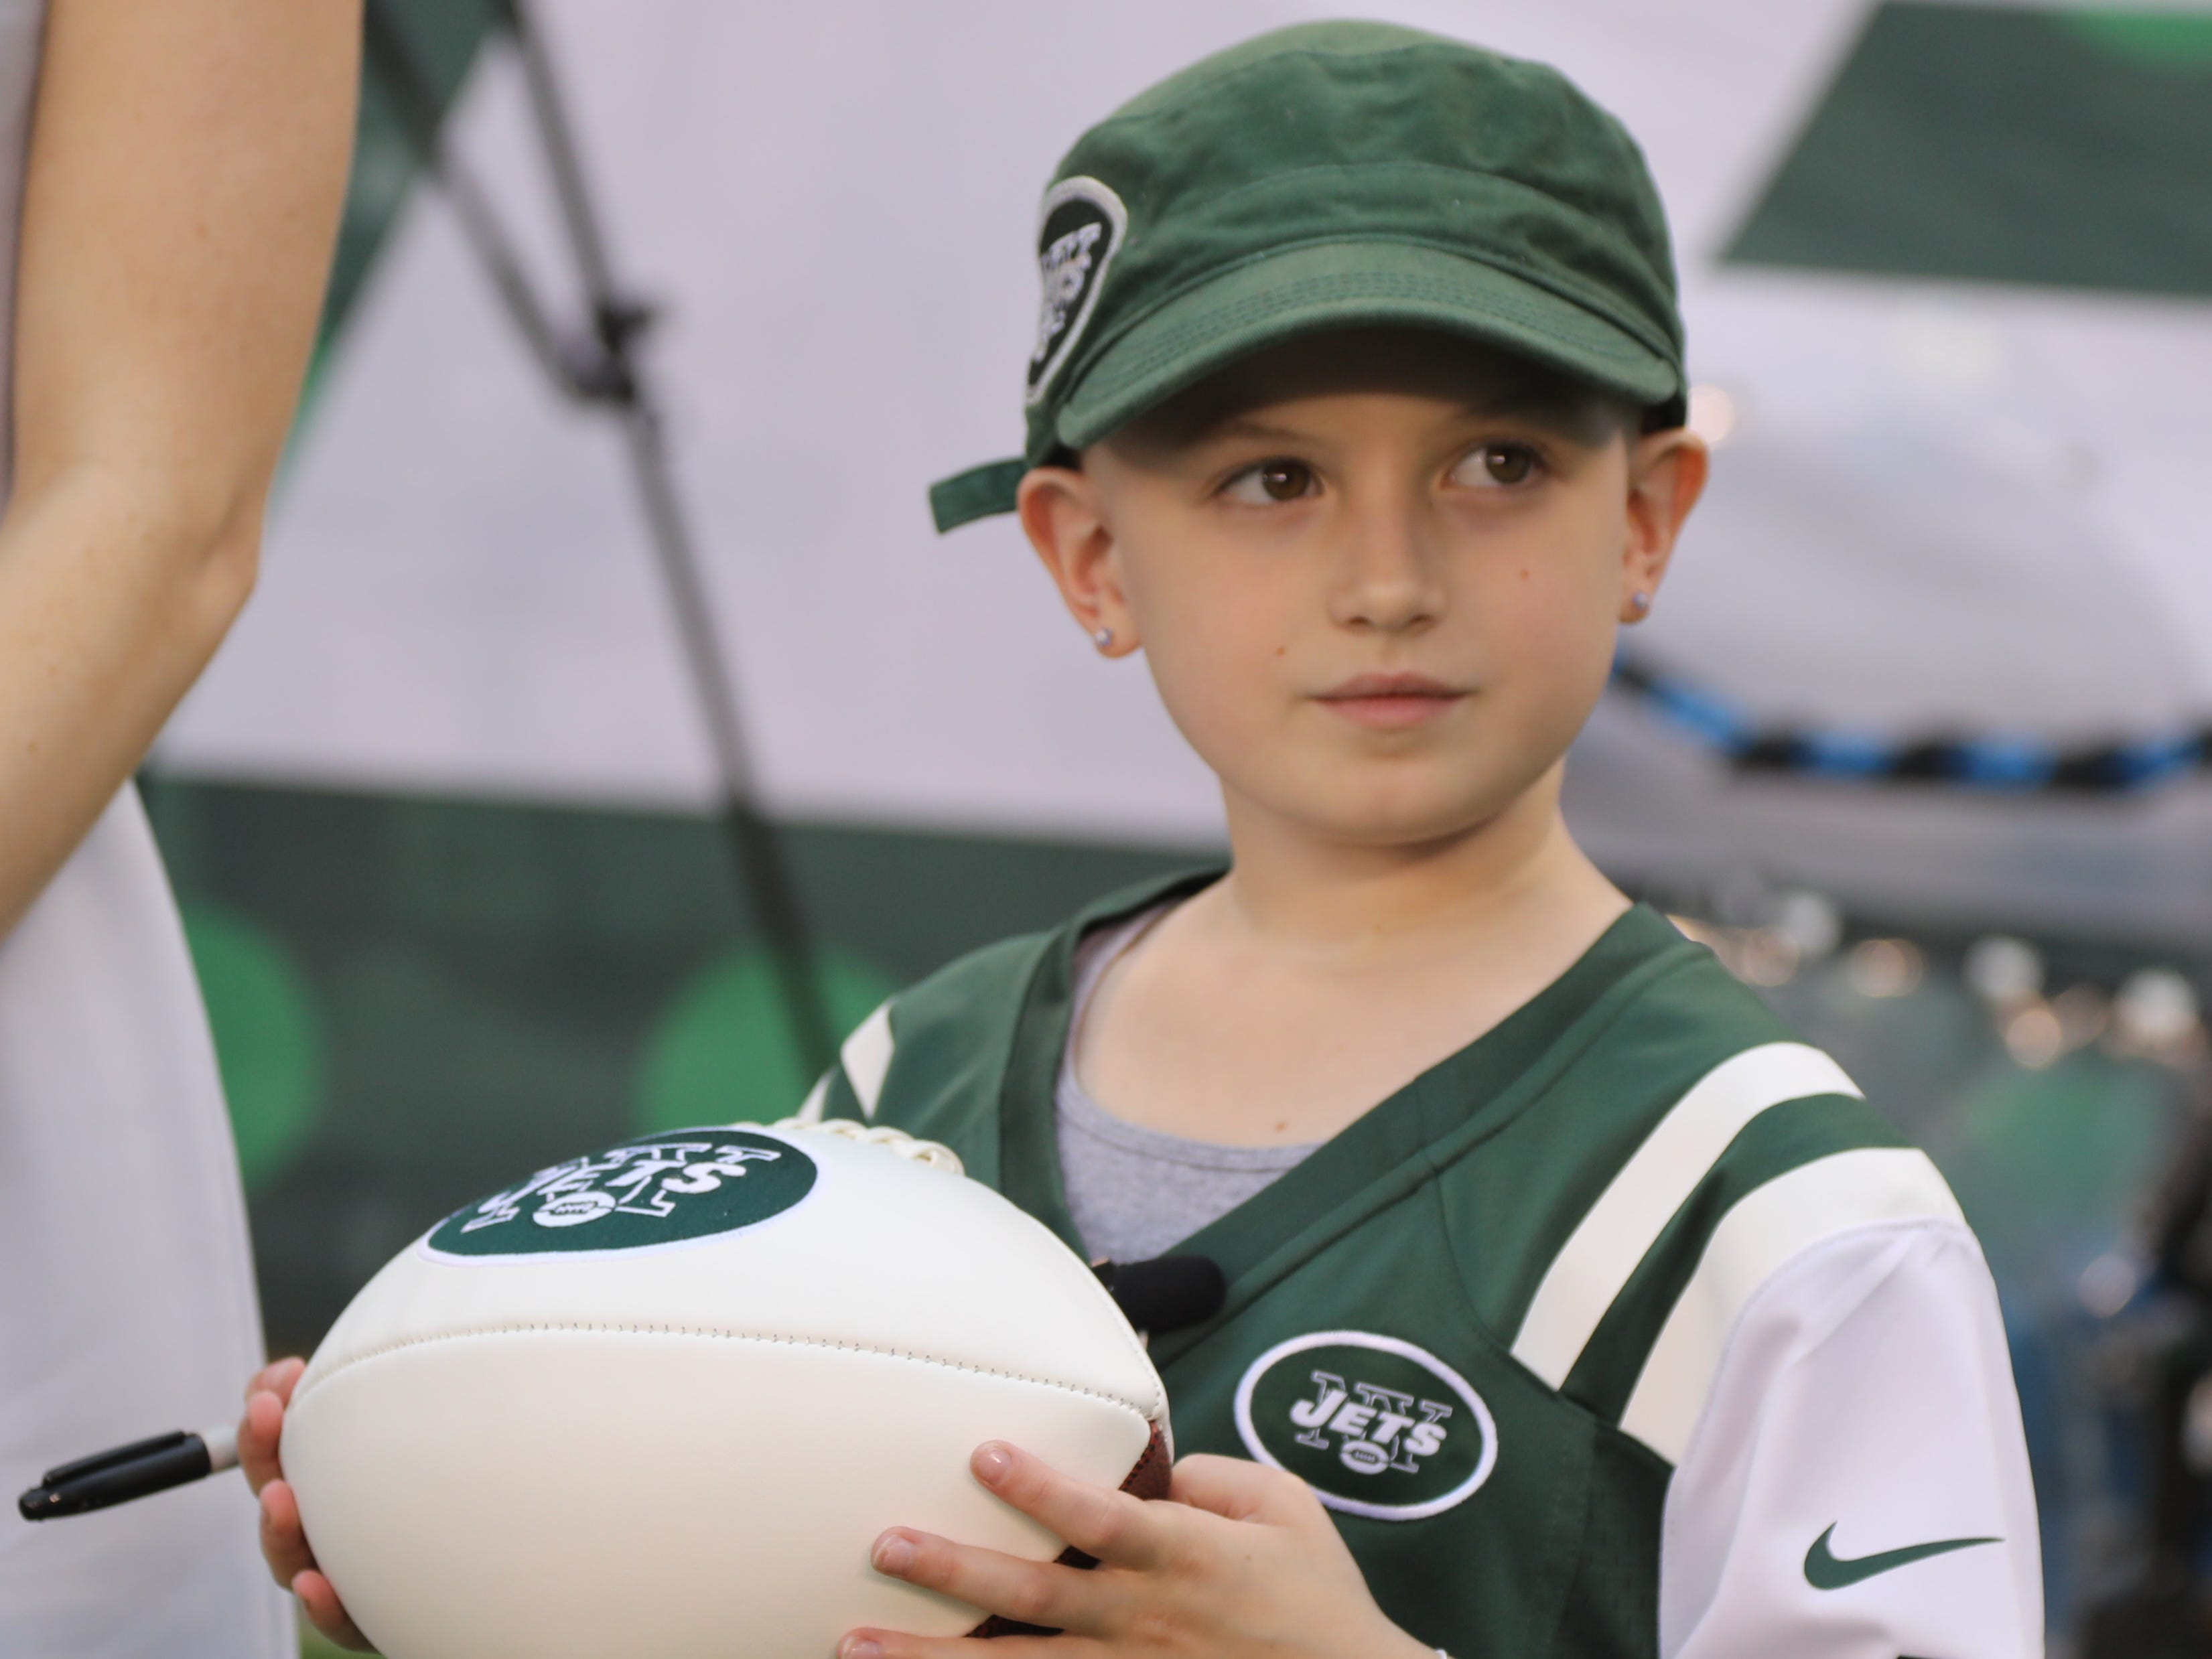 The Jets honorary captain for tonight's game, Grace Eline, 9, of the Gillette section of Long Hill Twp., NJ on the MetLife Stadium field during pregame warmups as New York hosted the Atlanta Falcons on Friday, Aug. 10, 2018.